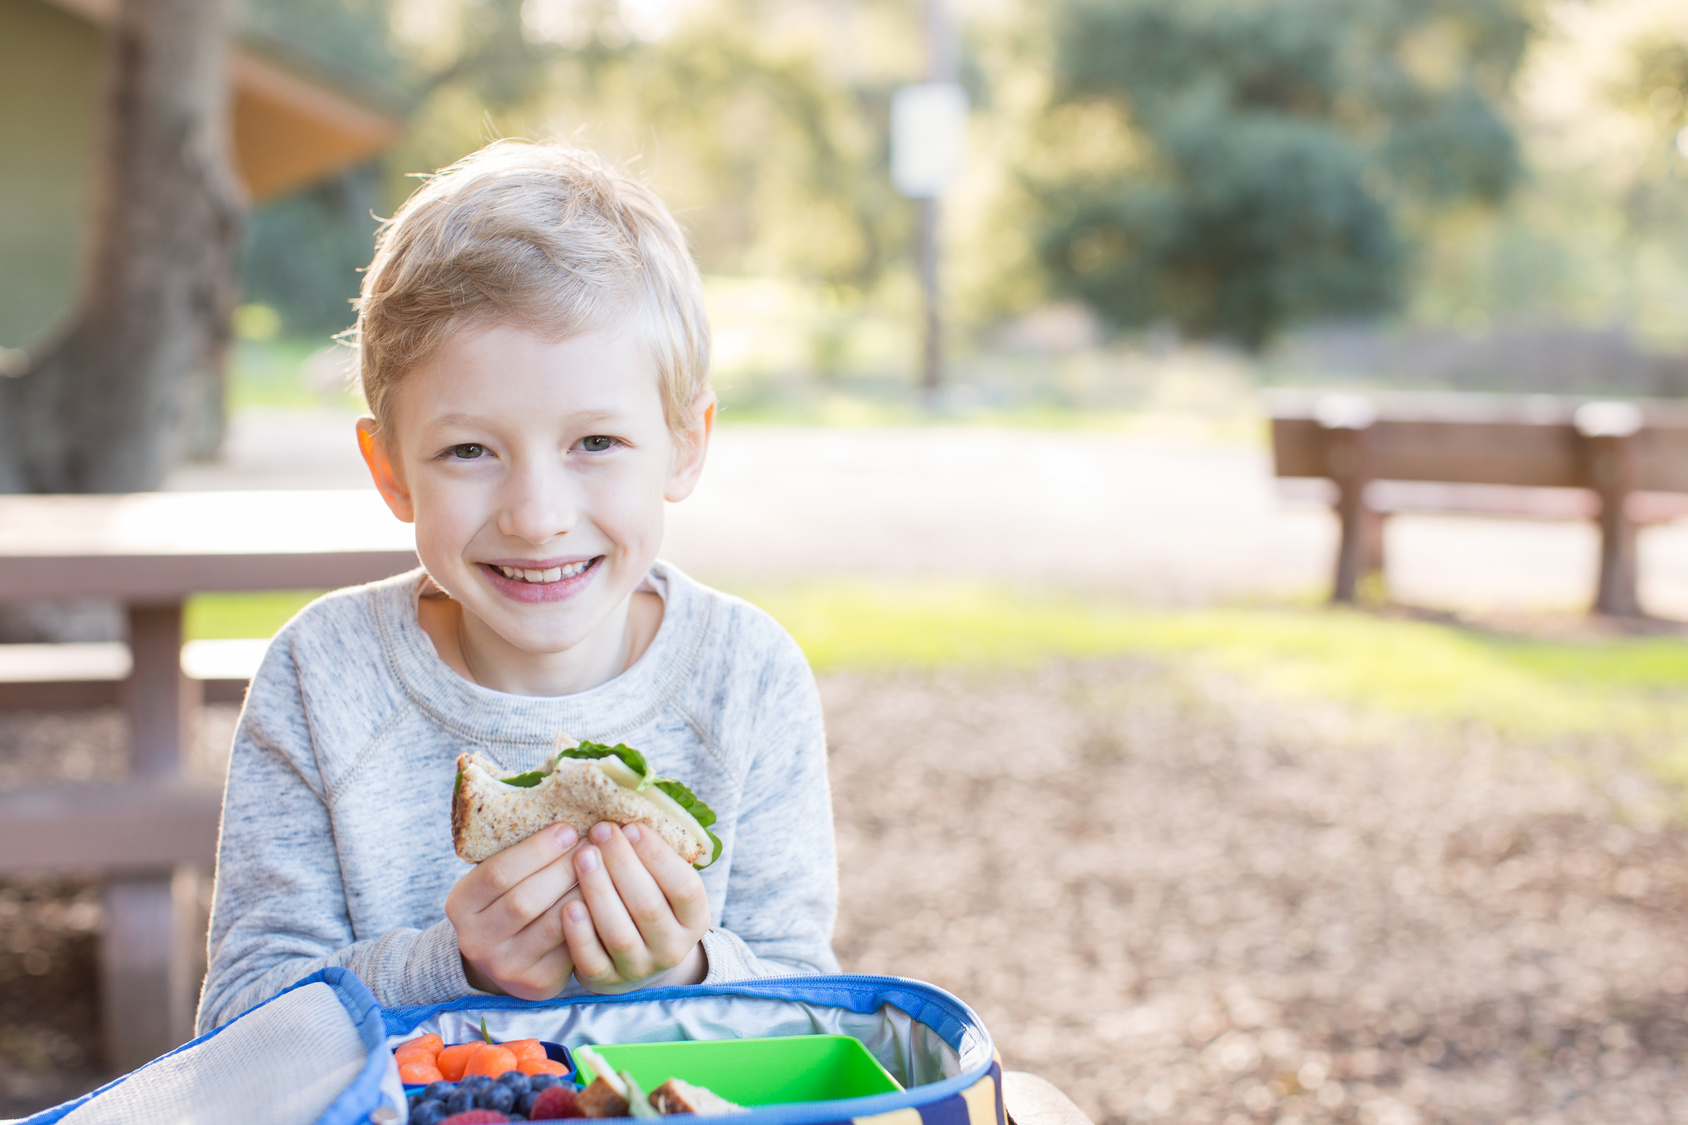 Young Boy Eating a Sandwich on Whole Wheat Bread